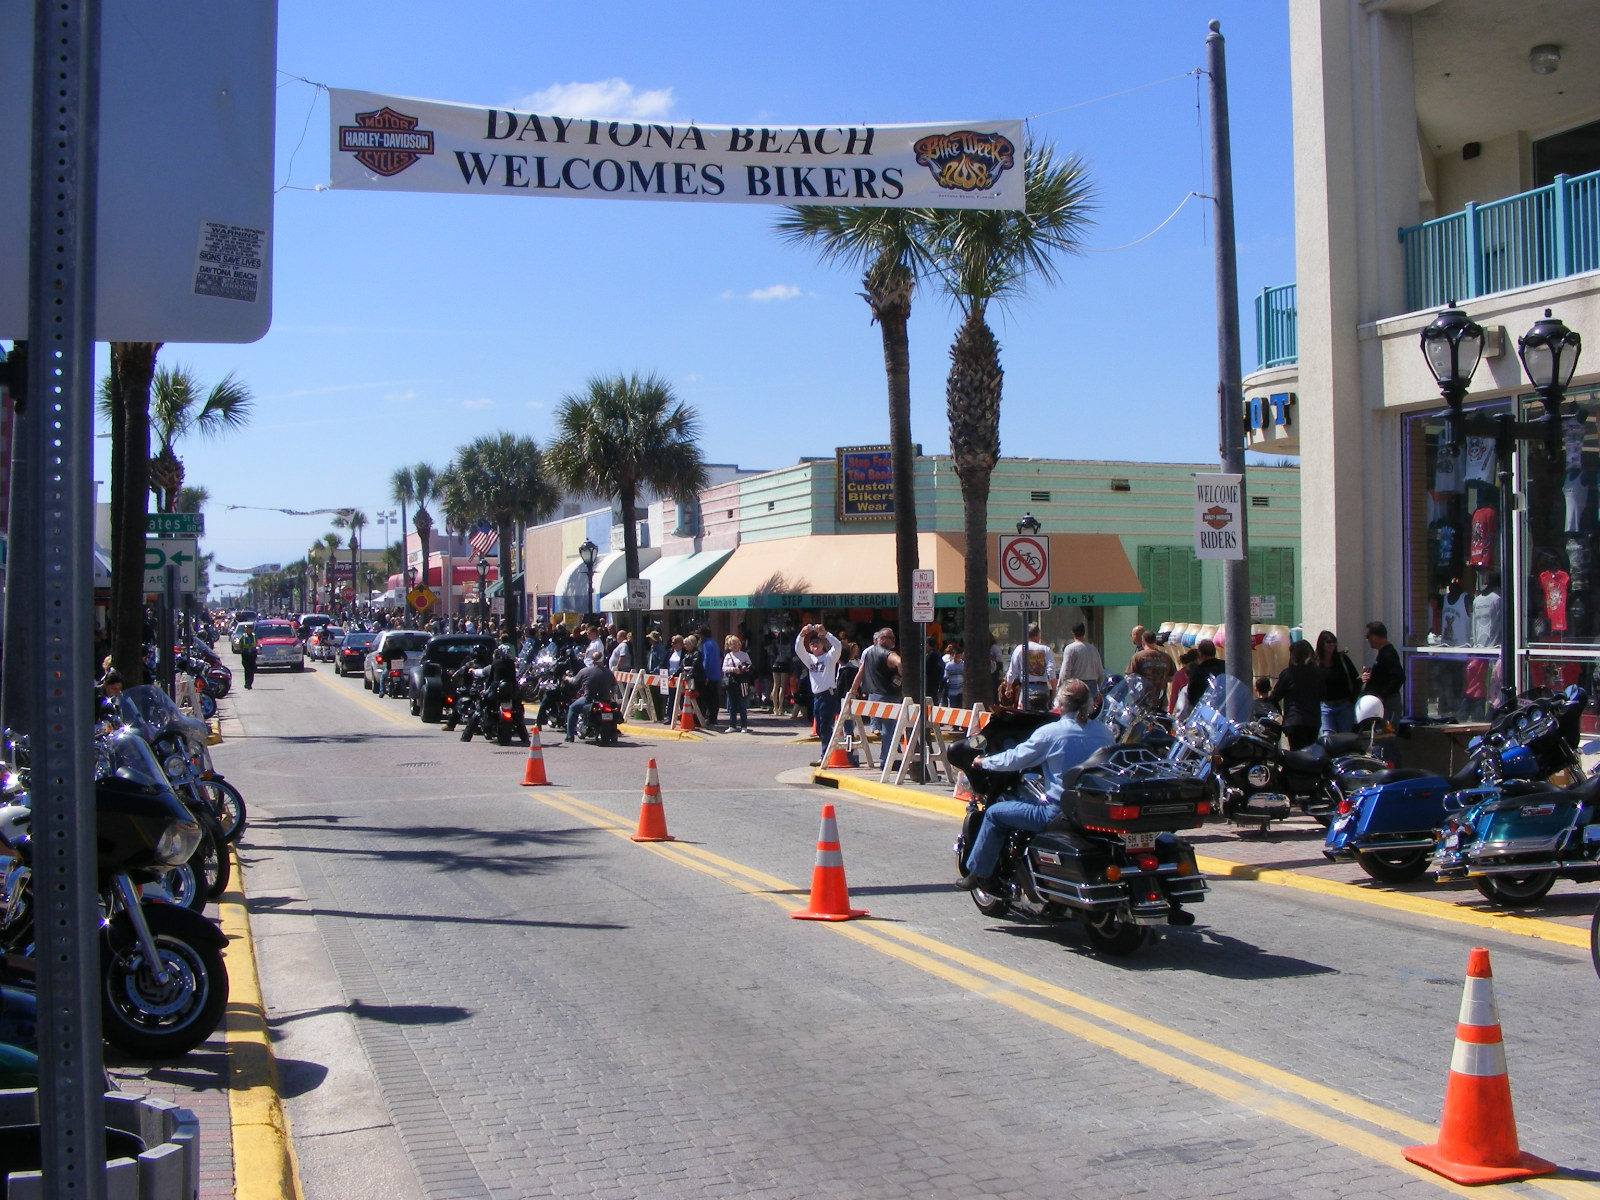 Motorcycles and bystanders at Daytona Bike Week